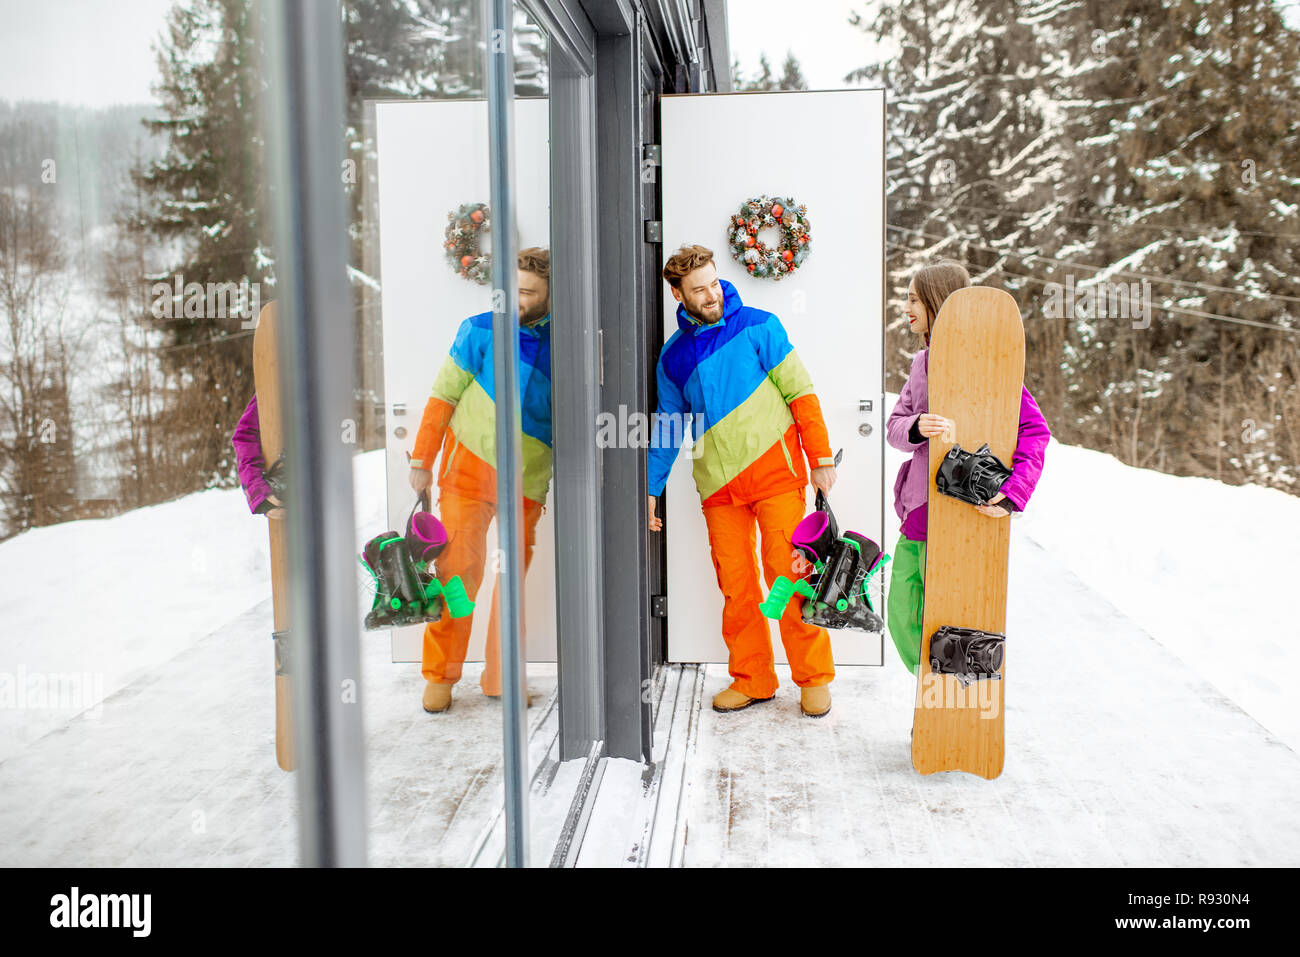 Young couple in coloful ski suits entering home or hotel after snowboarding in the snowy mountains - Stock Image